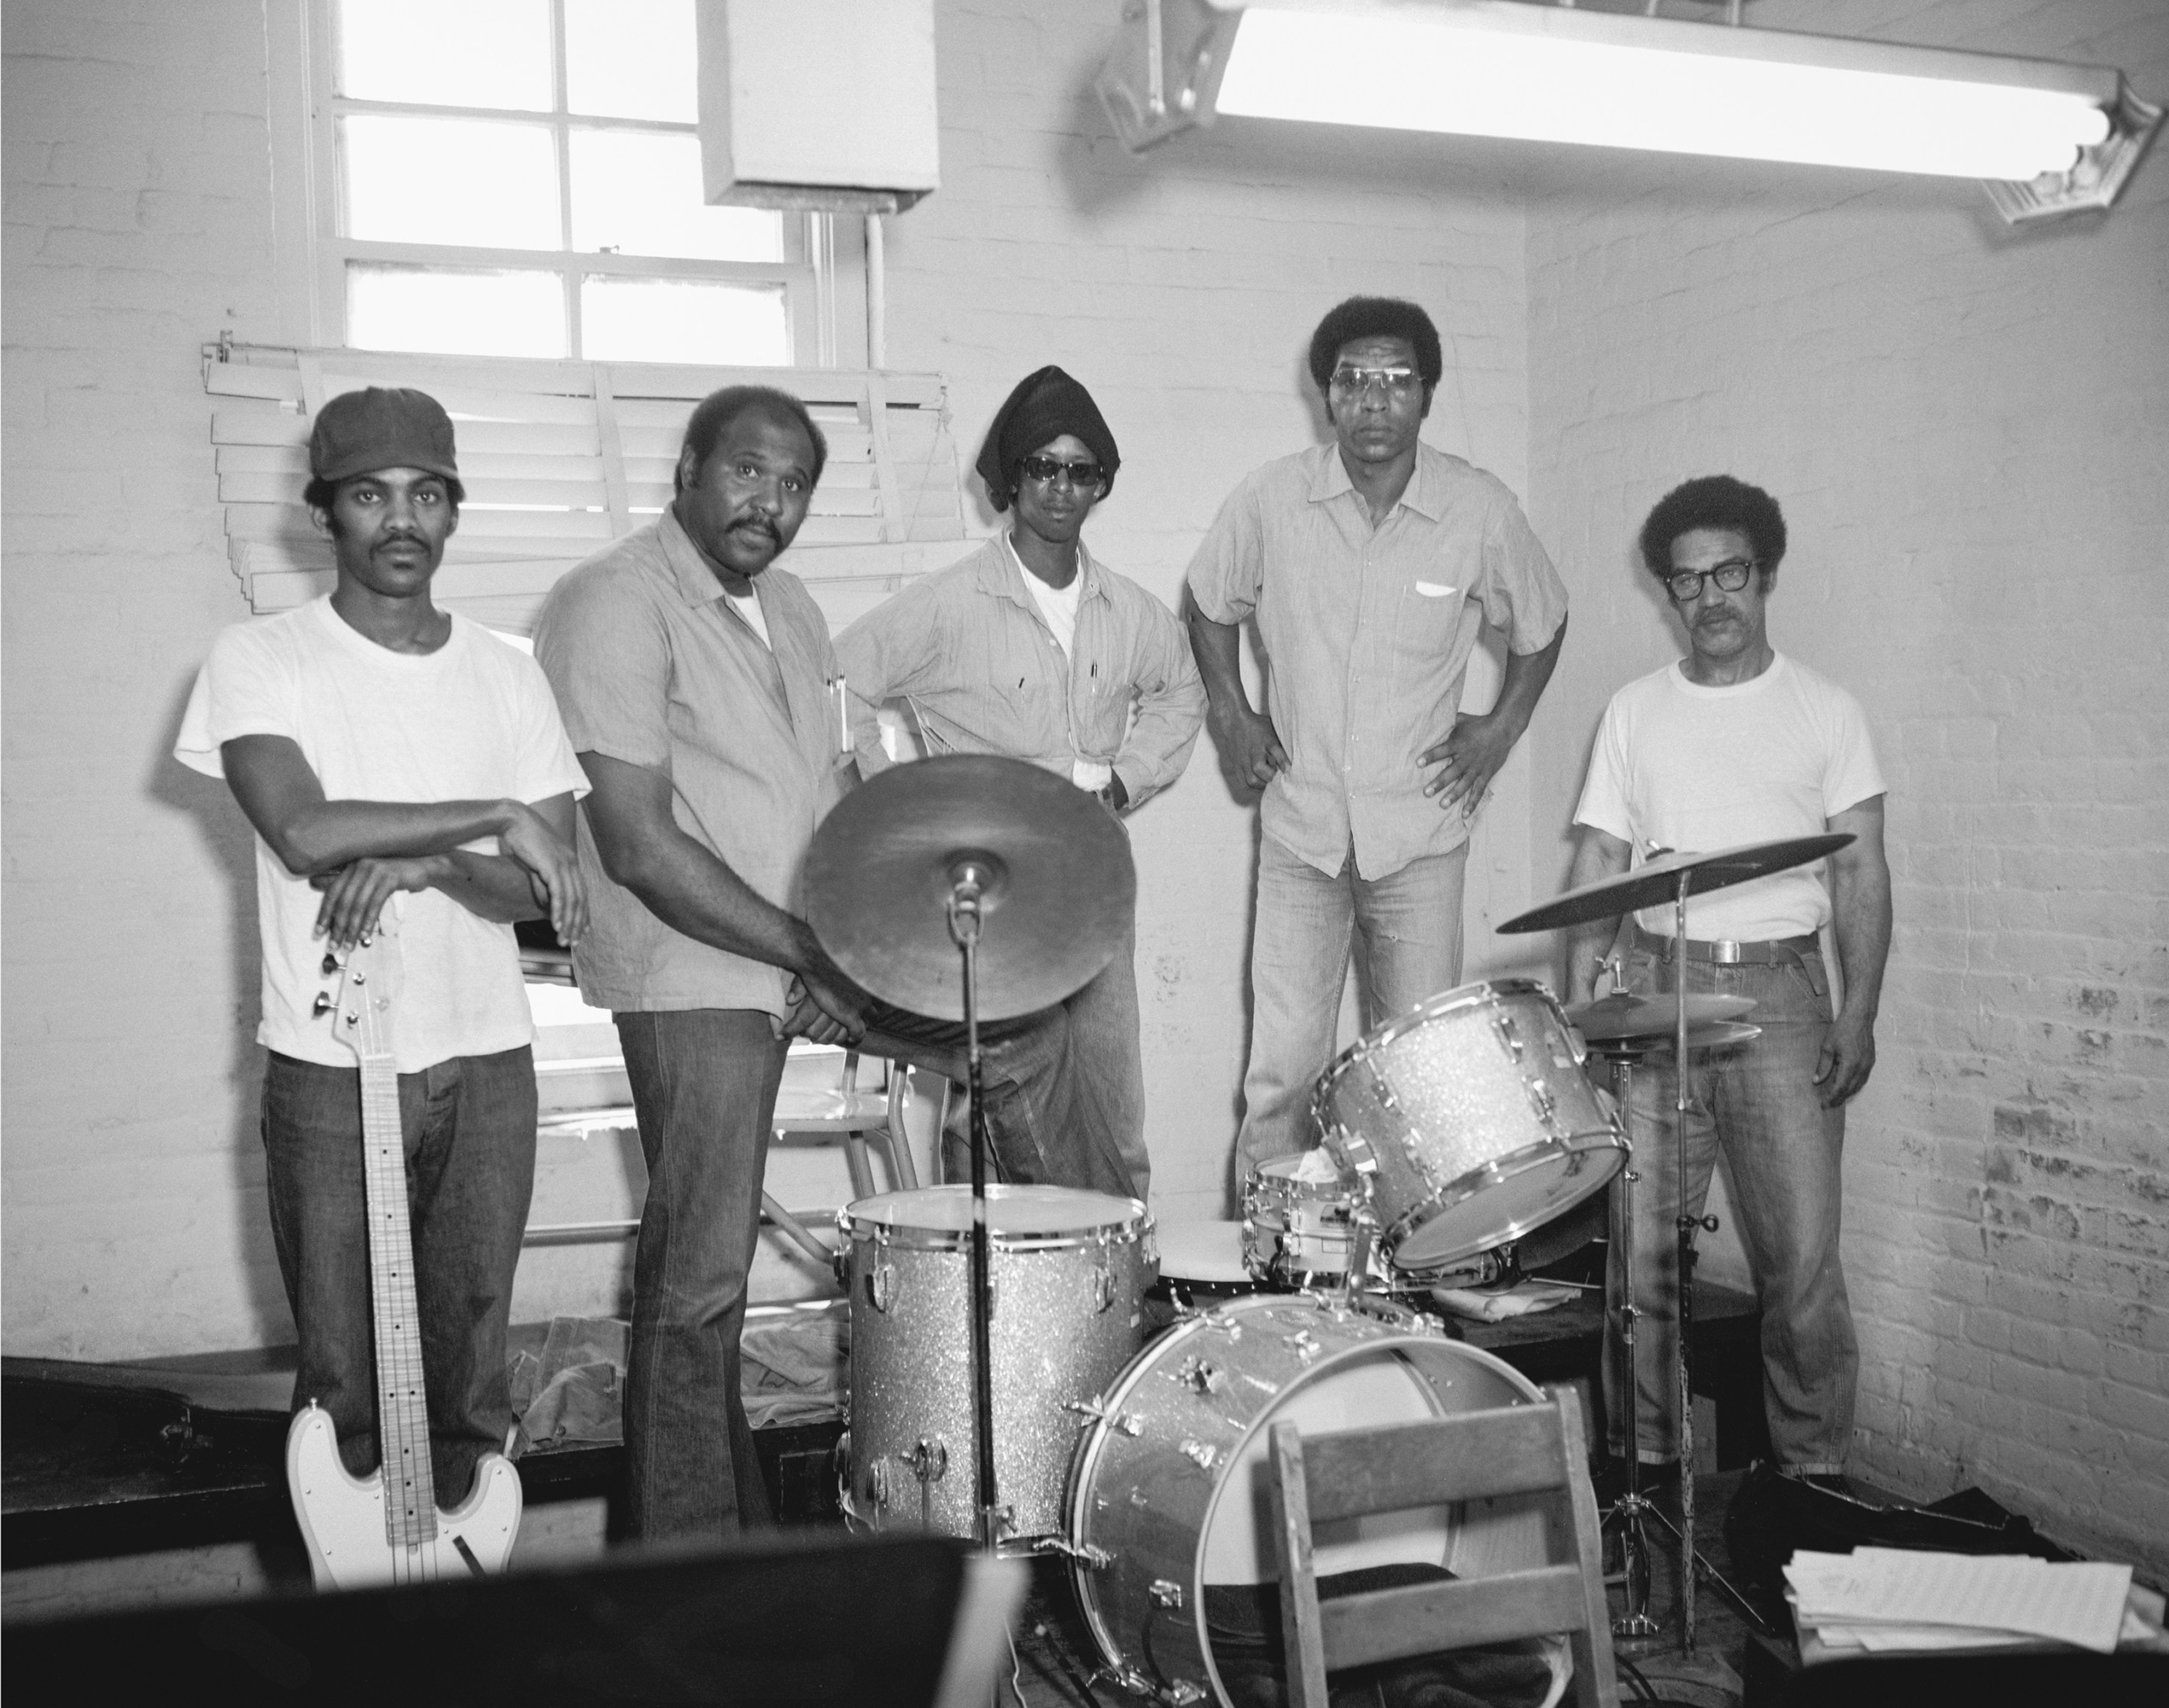 photograph of 5 men with band instruments in prison